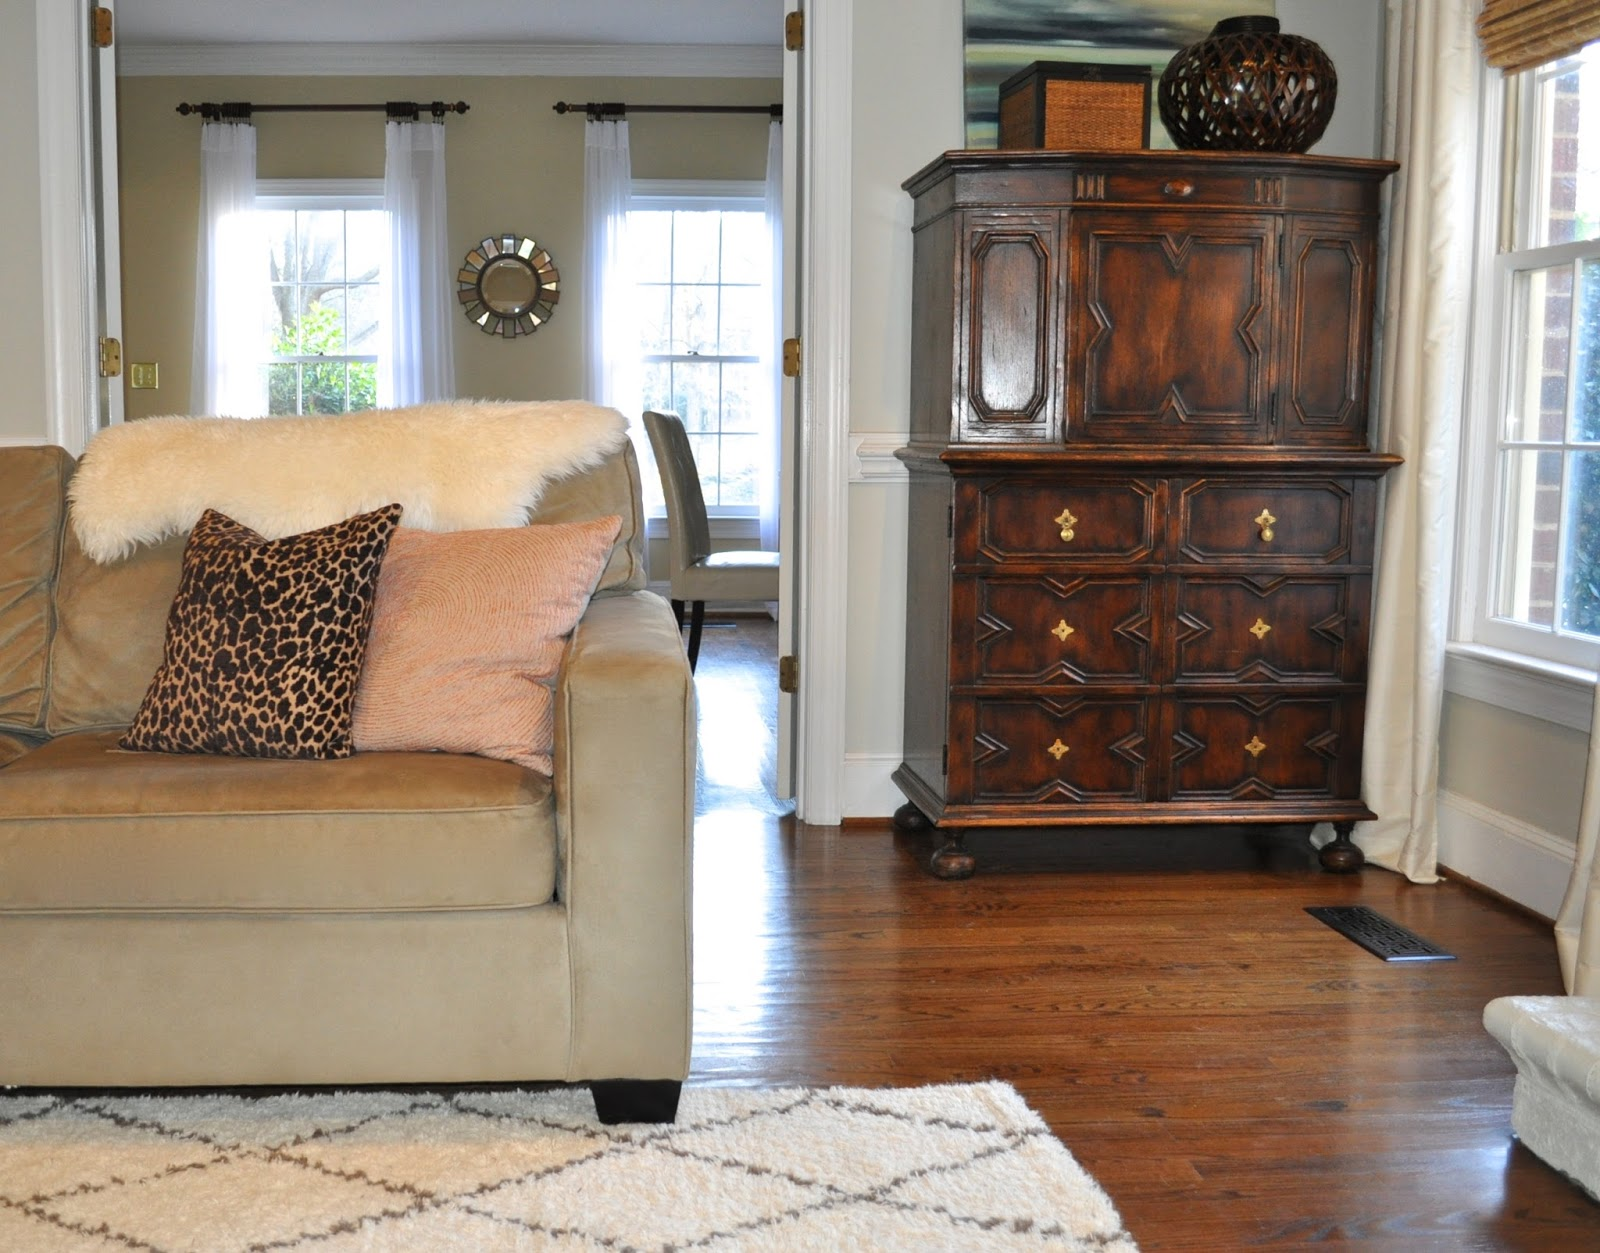 Review Of The Fabric Pottery Barn S Everyday Suede I Had Read So Many Great Reviews About It Stain Resistance And Was Excited To See For Myself